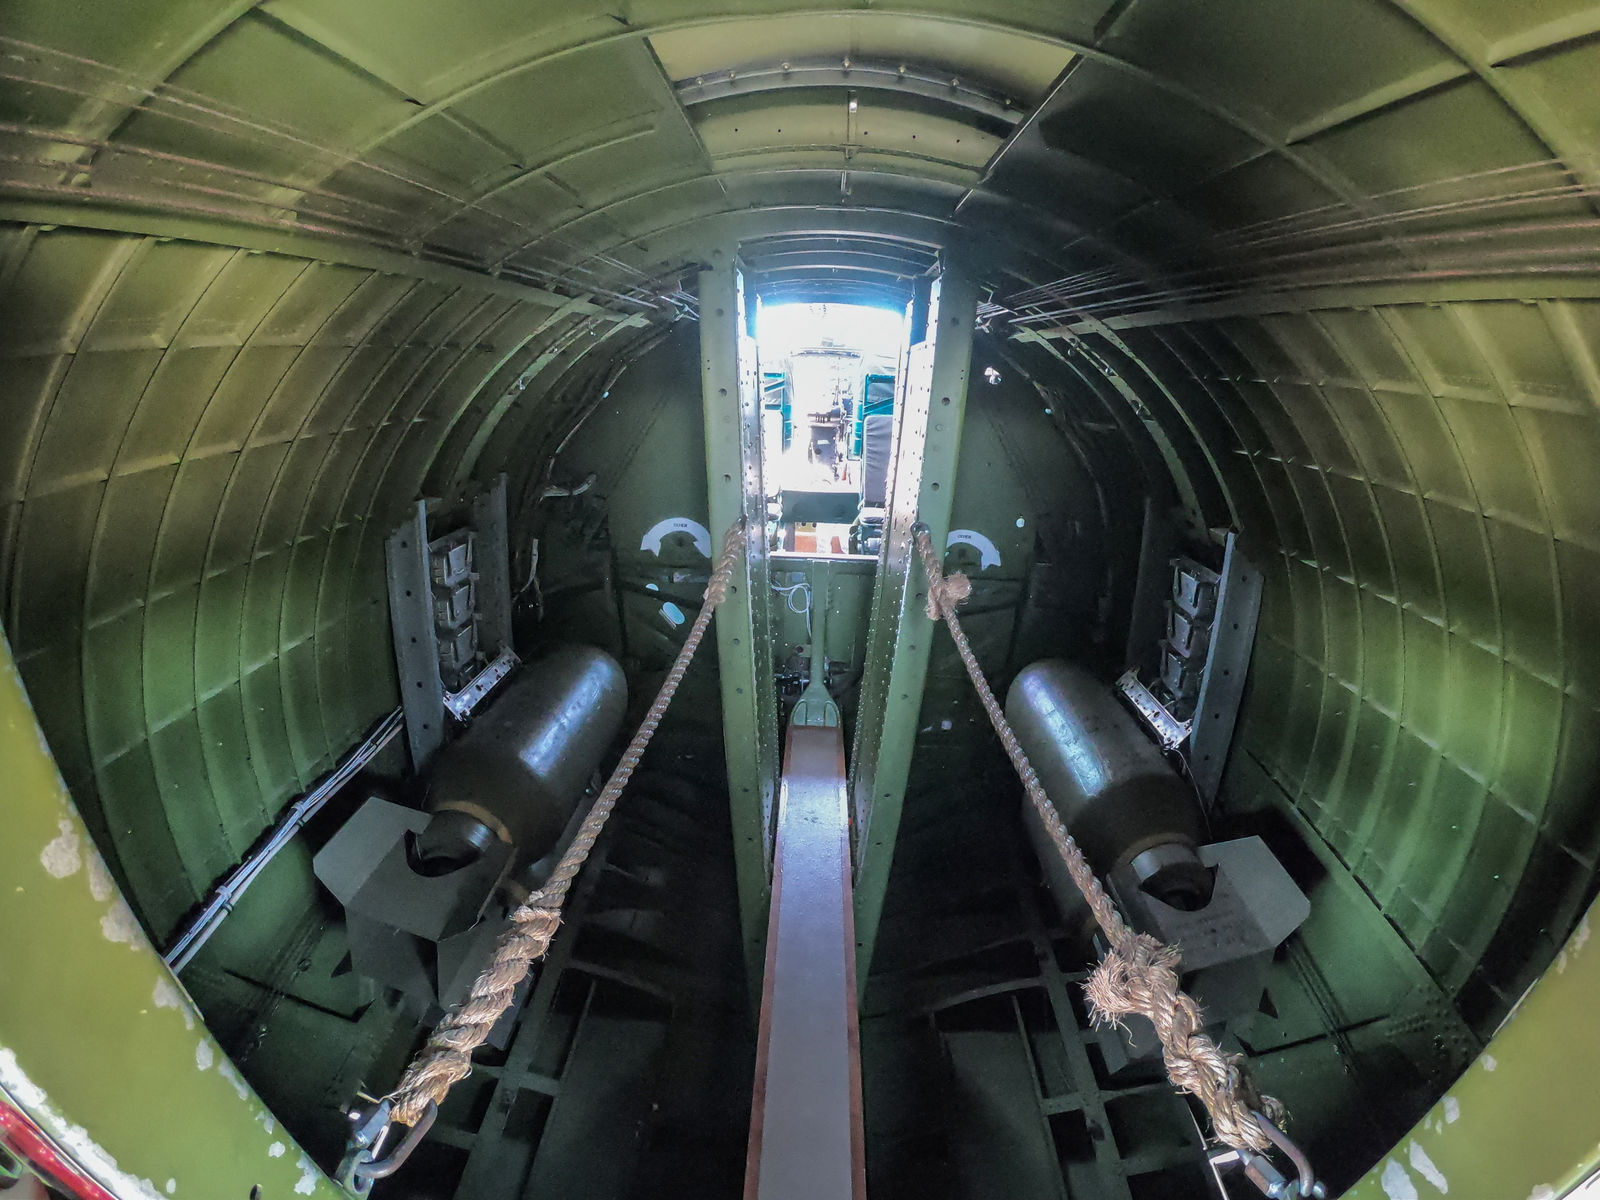 The Caldwell Airport will host a B-17 Bomber over the weekend of July 13 and 14. The Liberty Foundation is offering 30 minute flights for a fee in the historical aircraft. The B-17 is based on an Ye Odle Pub an iconic plane that made it through a harrowing mission and who the book A Higher Call is based upon. (Photos by Axel Quartarone){ }